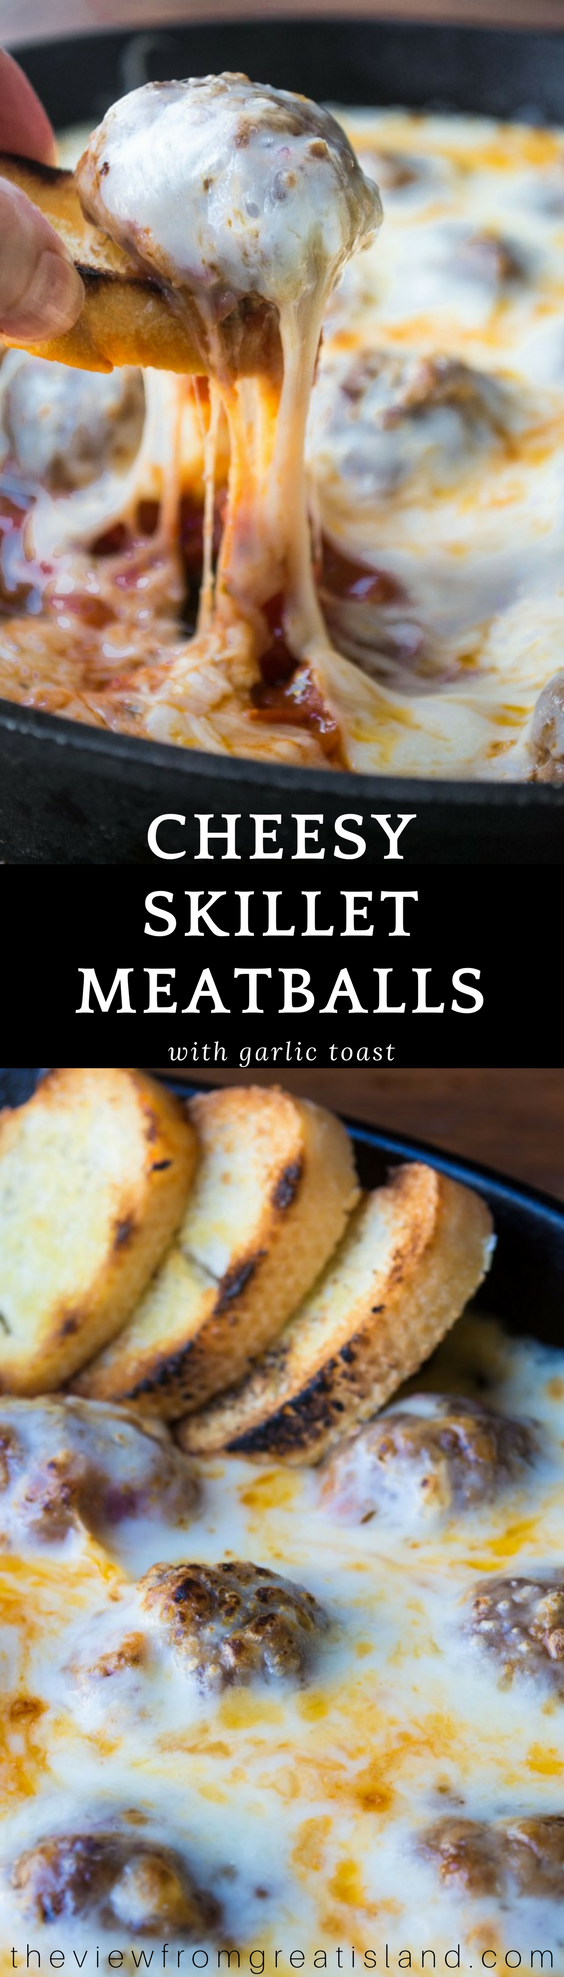 Cheesy Skillet Meatballs with Garlic Toast ~ this easy appetizer or light dinner with tender meatballs baked up in an ooey gooey cheese sauce comes with crisp slices of garlic bread for scooping ~ yum! #meatballs #appetizer #groundbeef #hotappetizer #dip #cheesedip #dinner #comfortfood #bestmeatballs #hotdip #homemade #groundbeef